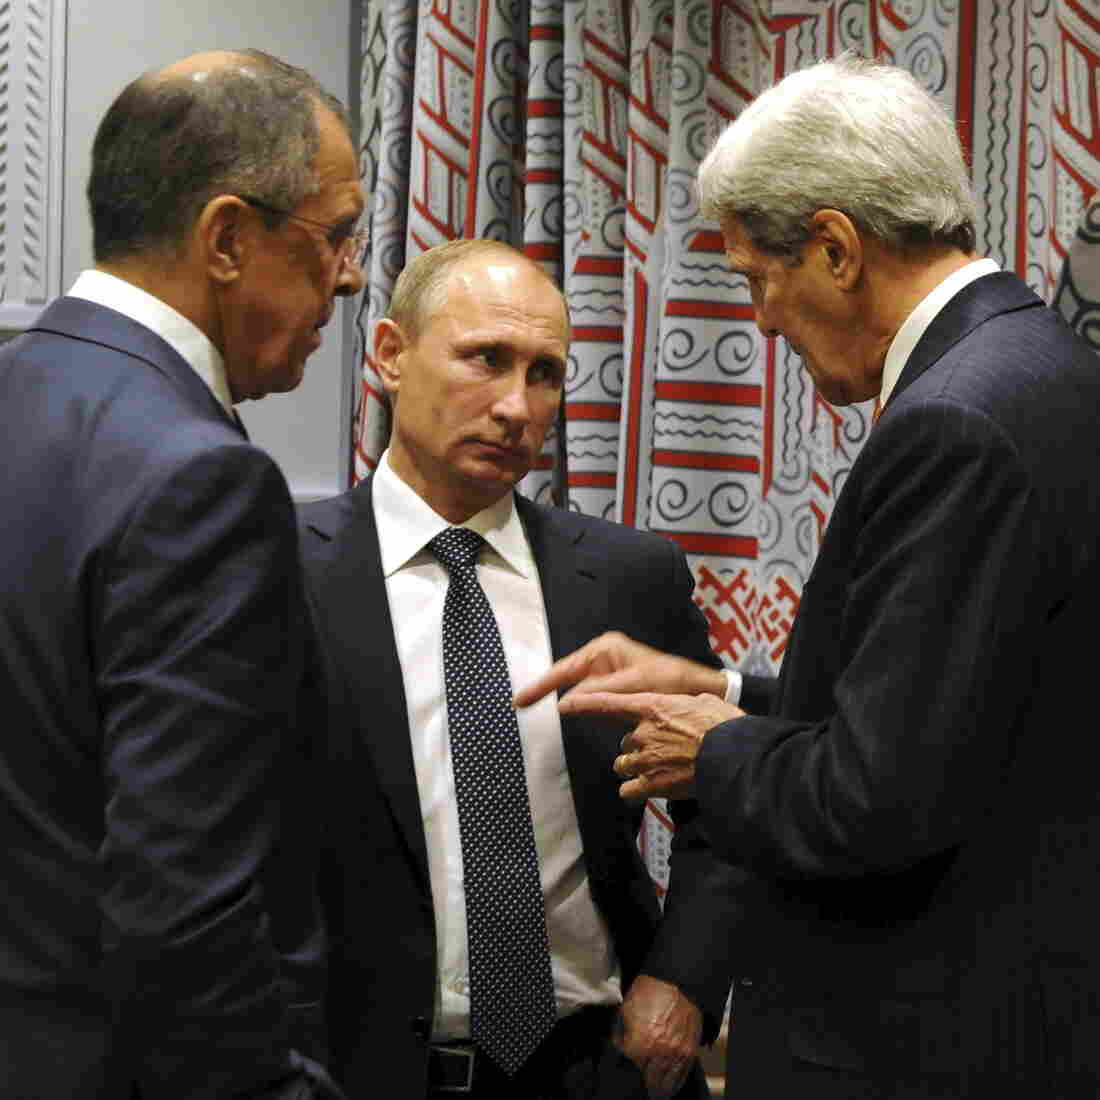 Russia Begins Airstrikes In Syria After Assad's Request